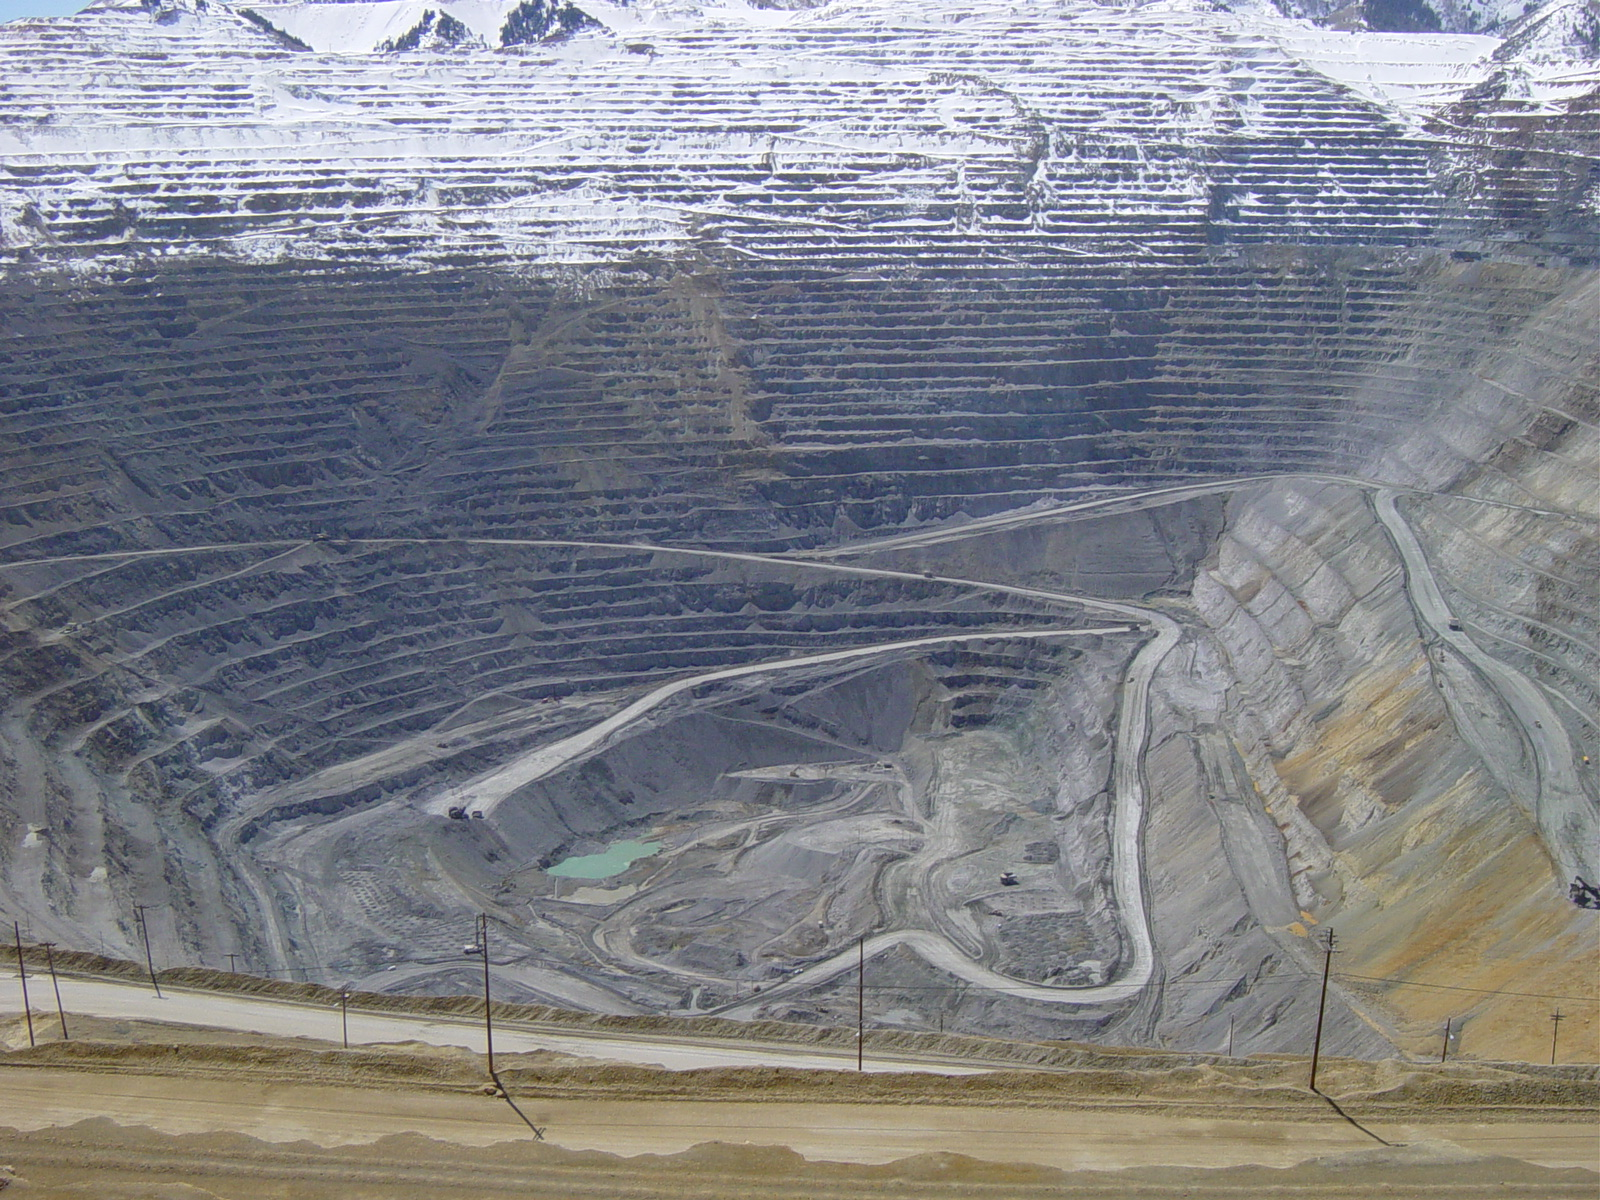 Does open pit mining affect environmental careers